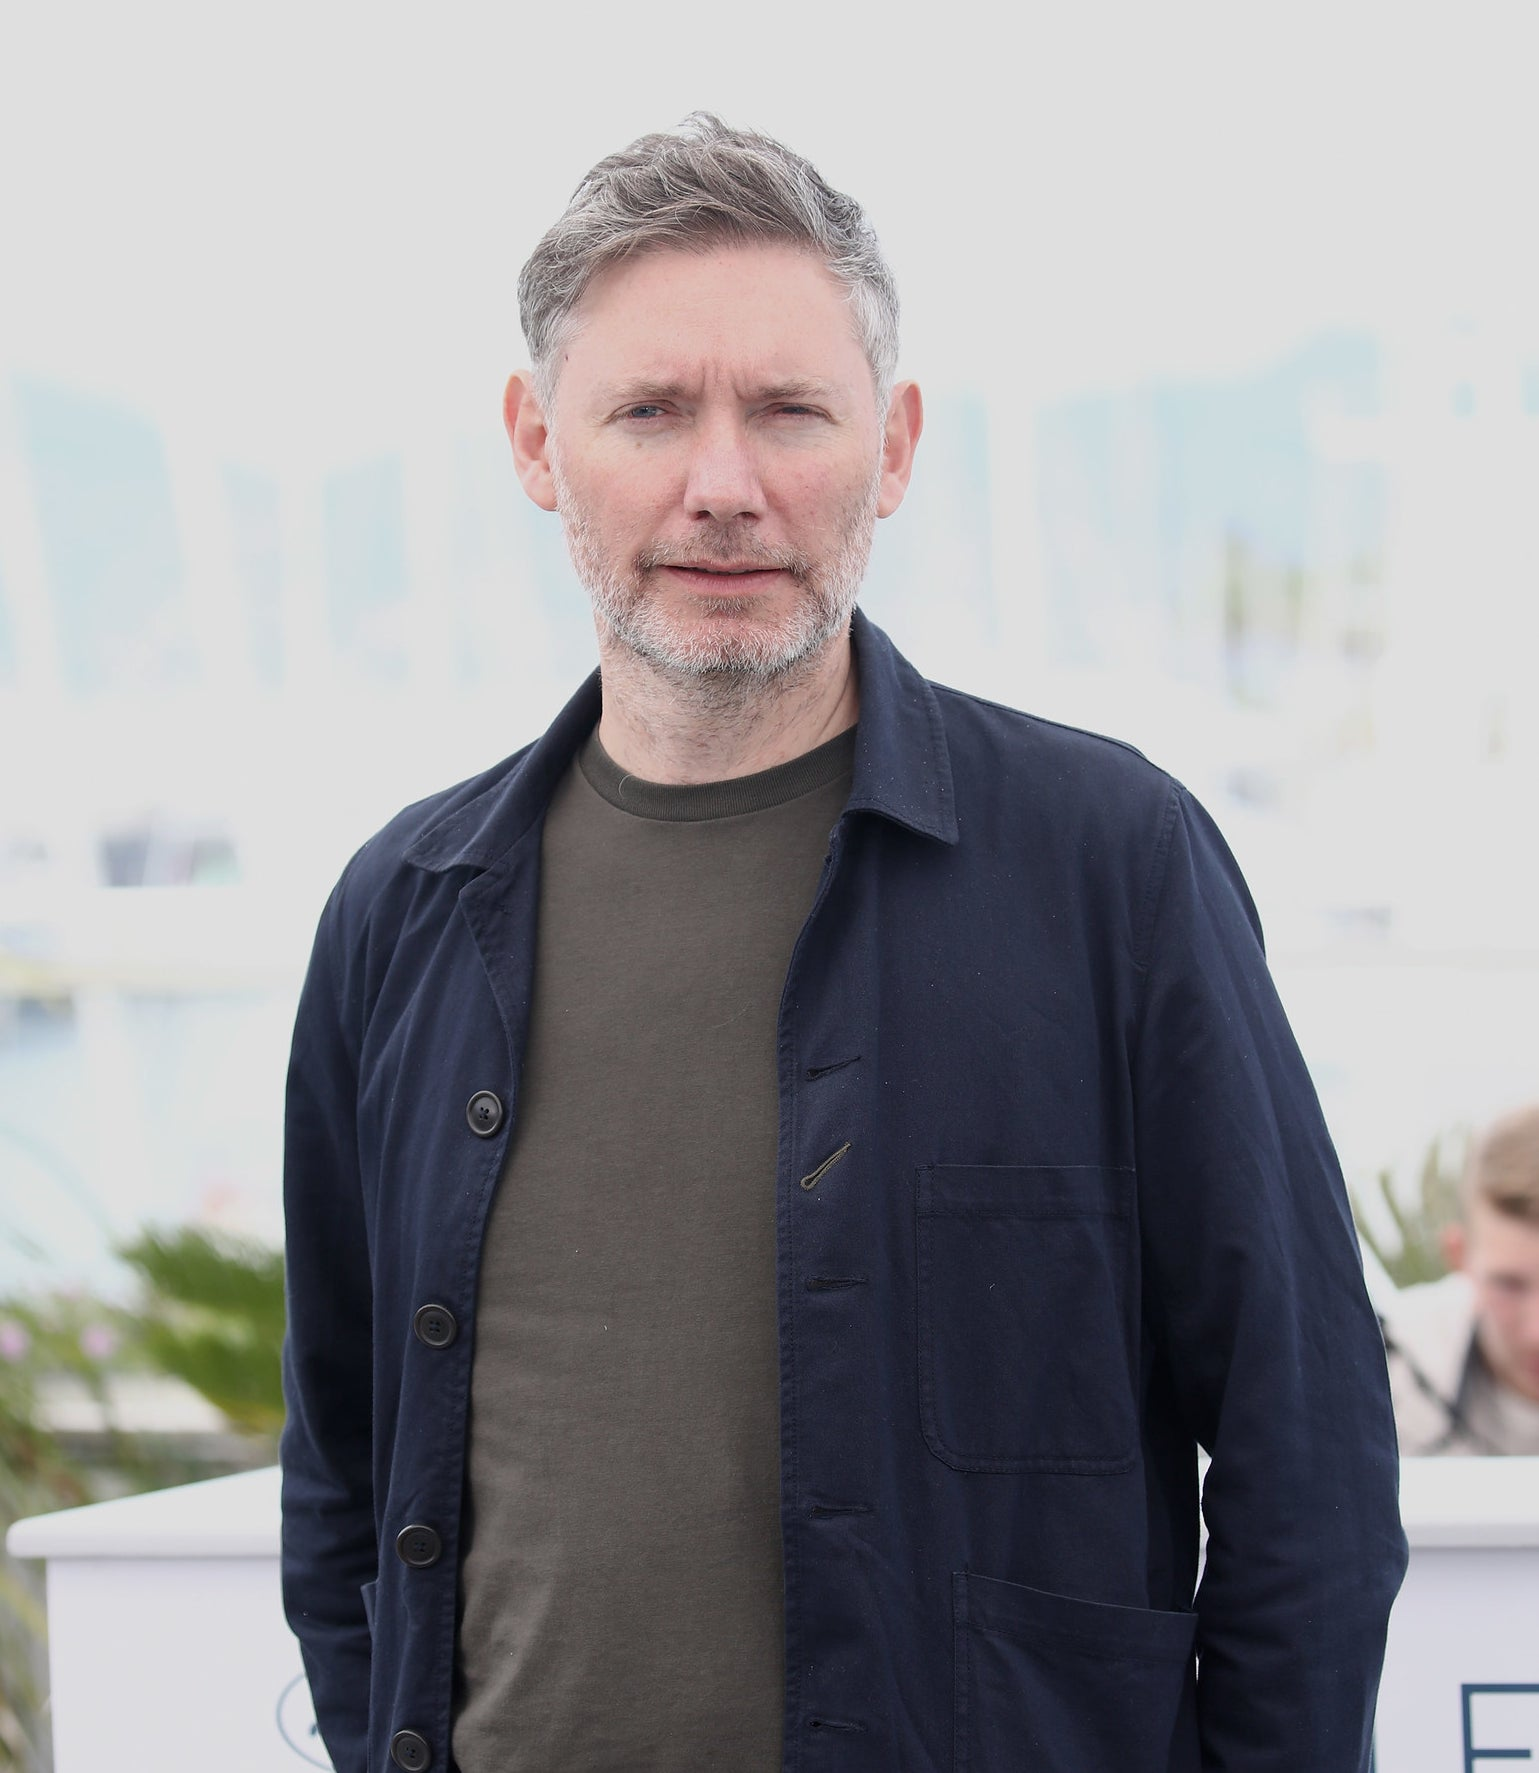 Kevin Macdonald at the 71st annual Cannes Film Festival on May 17, 2018.